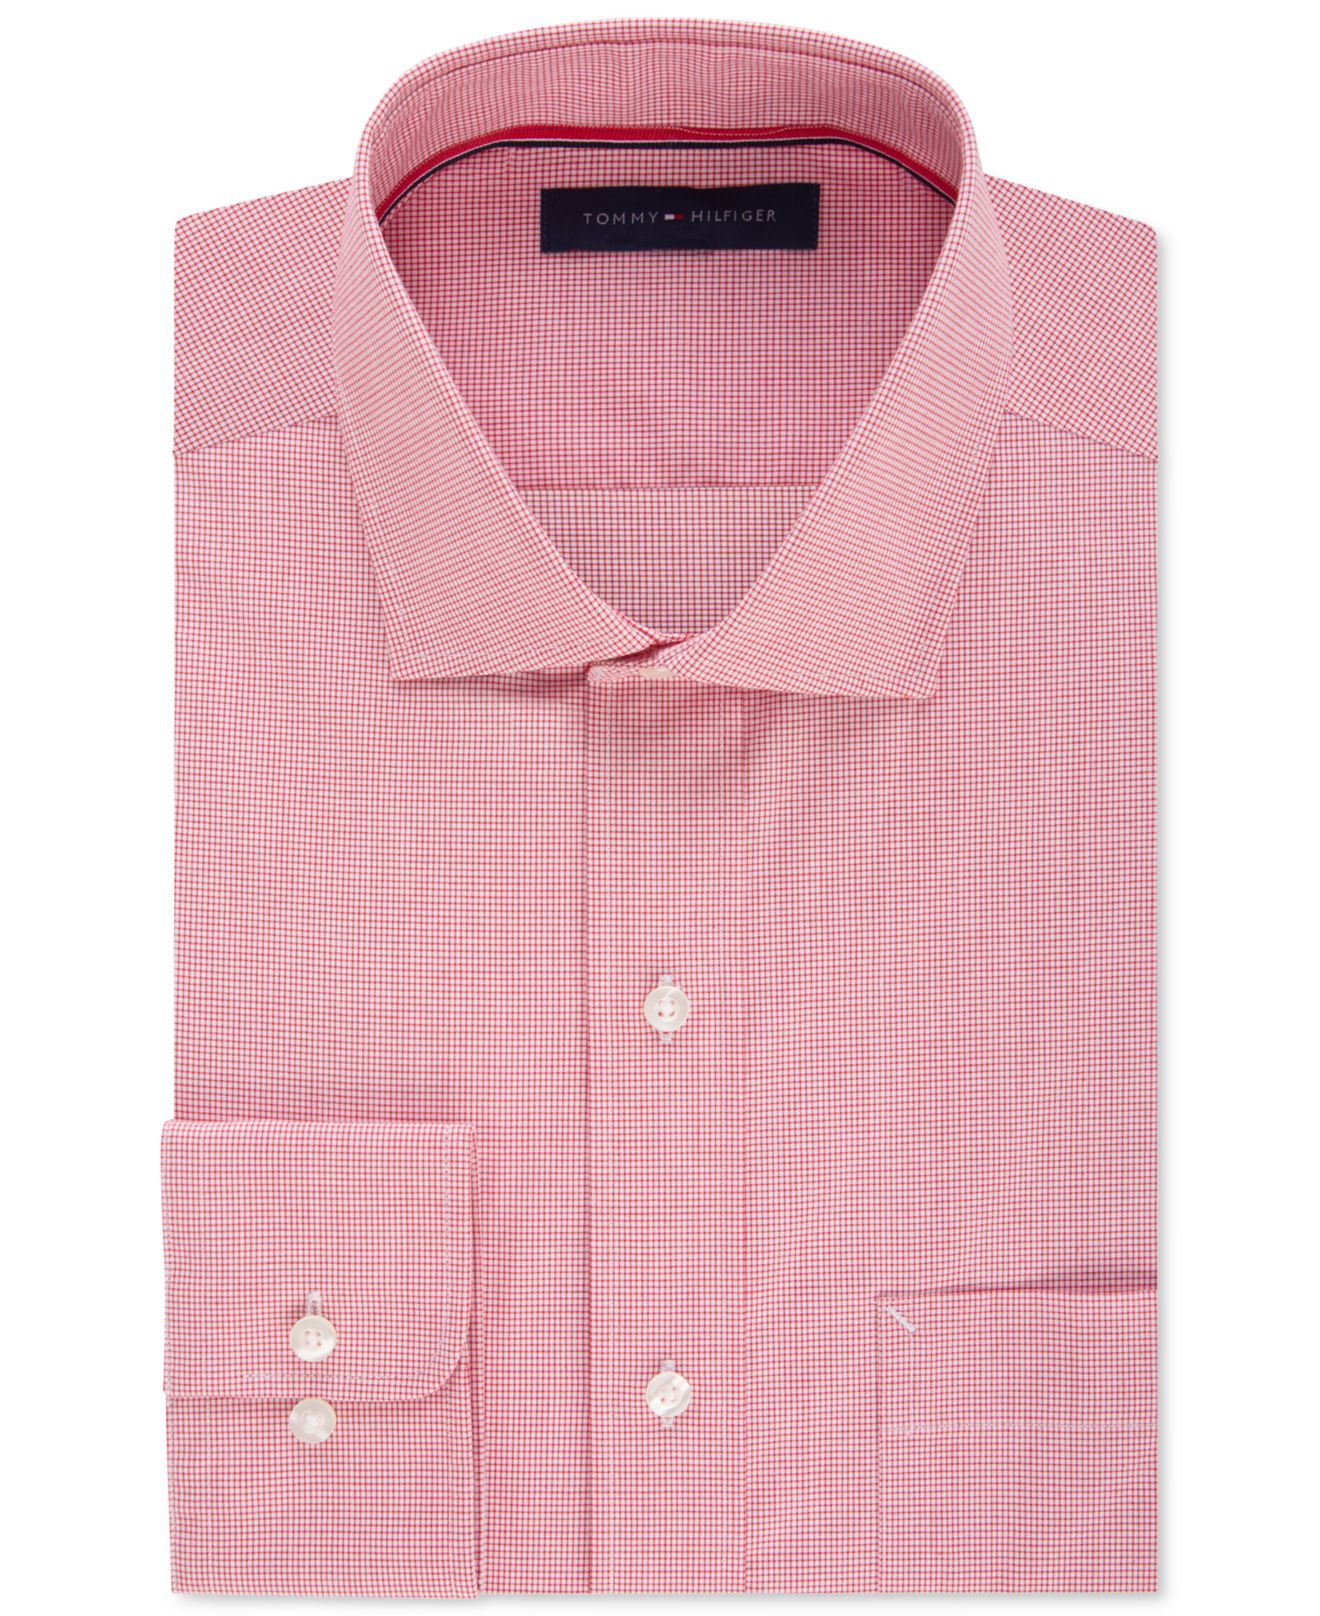 Tommy hilfiger men 39 s classic fit non iron cayenne gingham for Tommy hilfiger vintage fit shirt